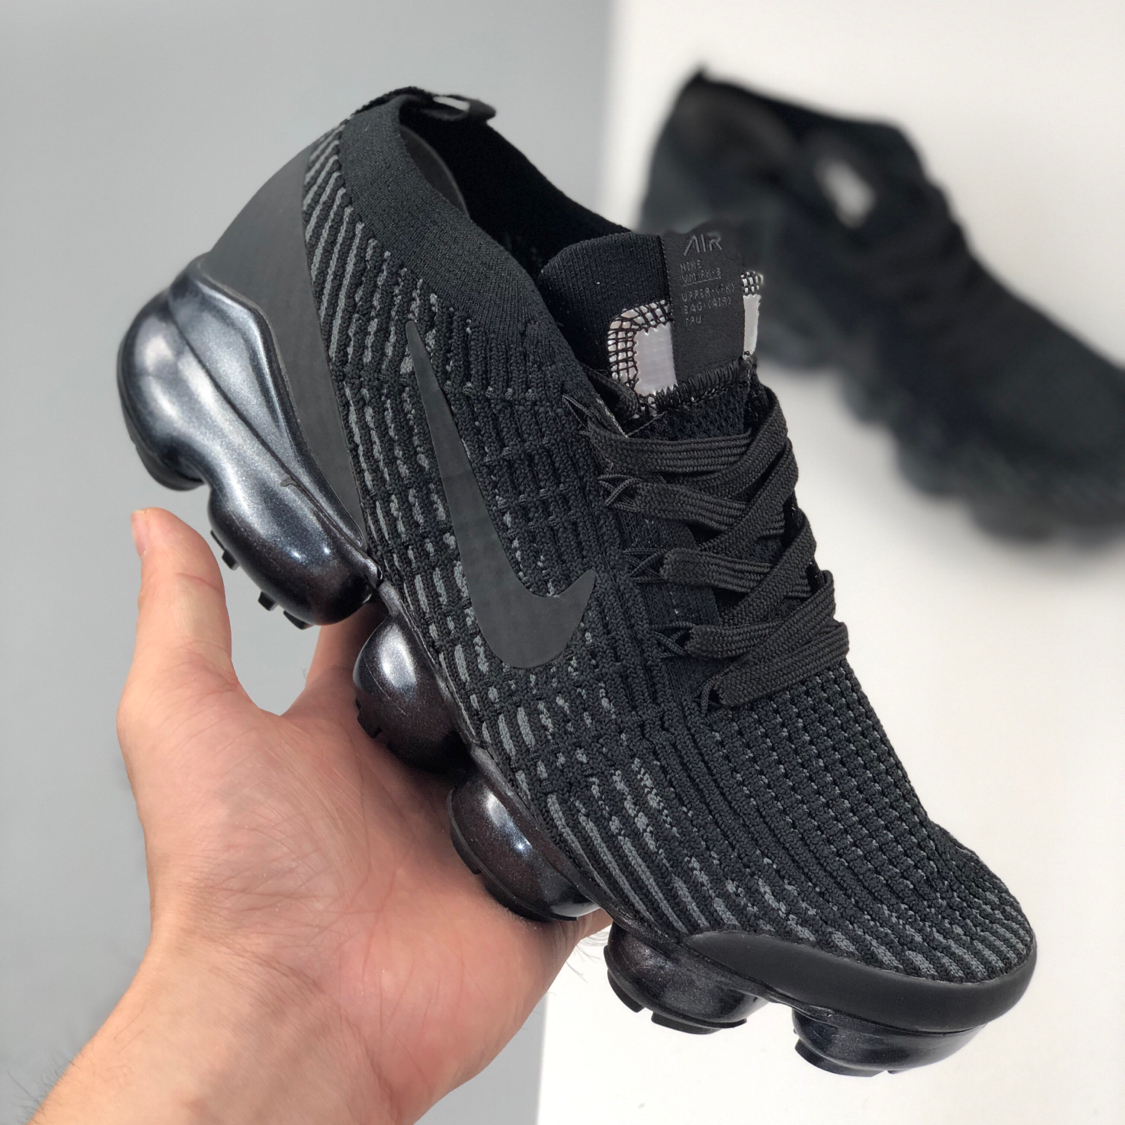 Image of Nike Air Vapormax Flyknit Air Cushion Color Block Men's and Women's Basketball Shoes Sneakers